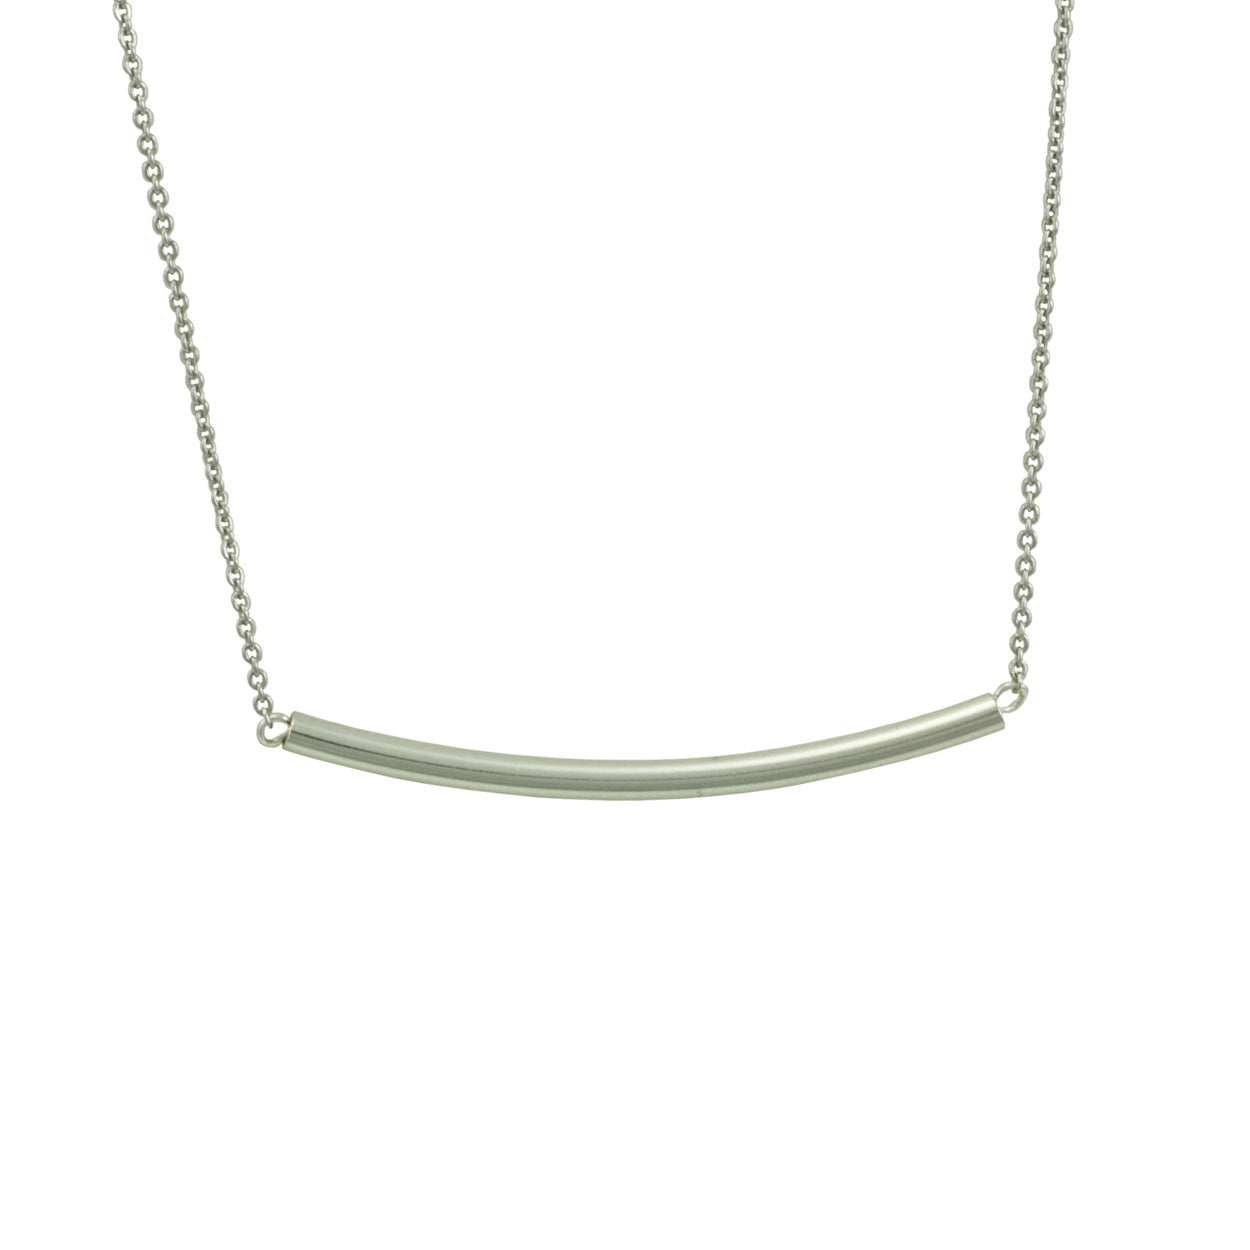 Sterling Silver 'stunning' Curved Bar Necklace For Most Up To Date Sparkling Curved Bar Necklaces (View 4 of 25)